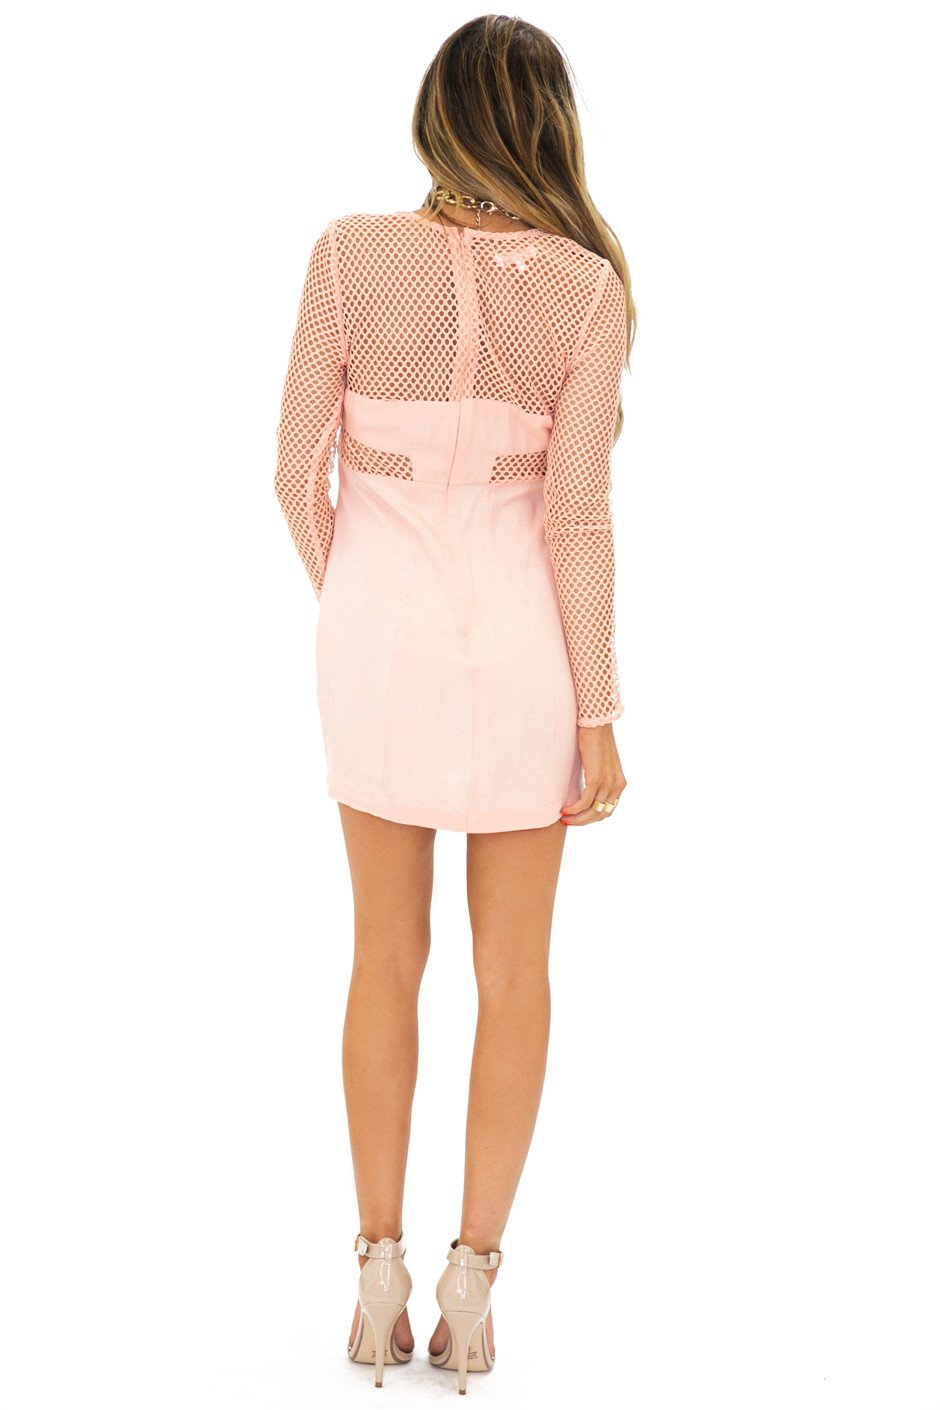 NET CUTOUT BODYCON DRESS - Peach (Final Sale) - Haute & Rebellious